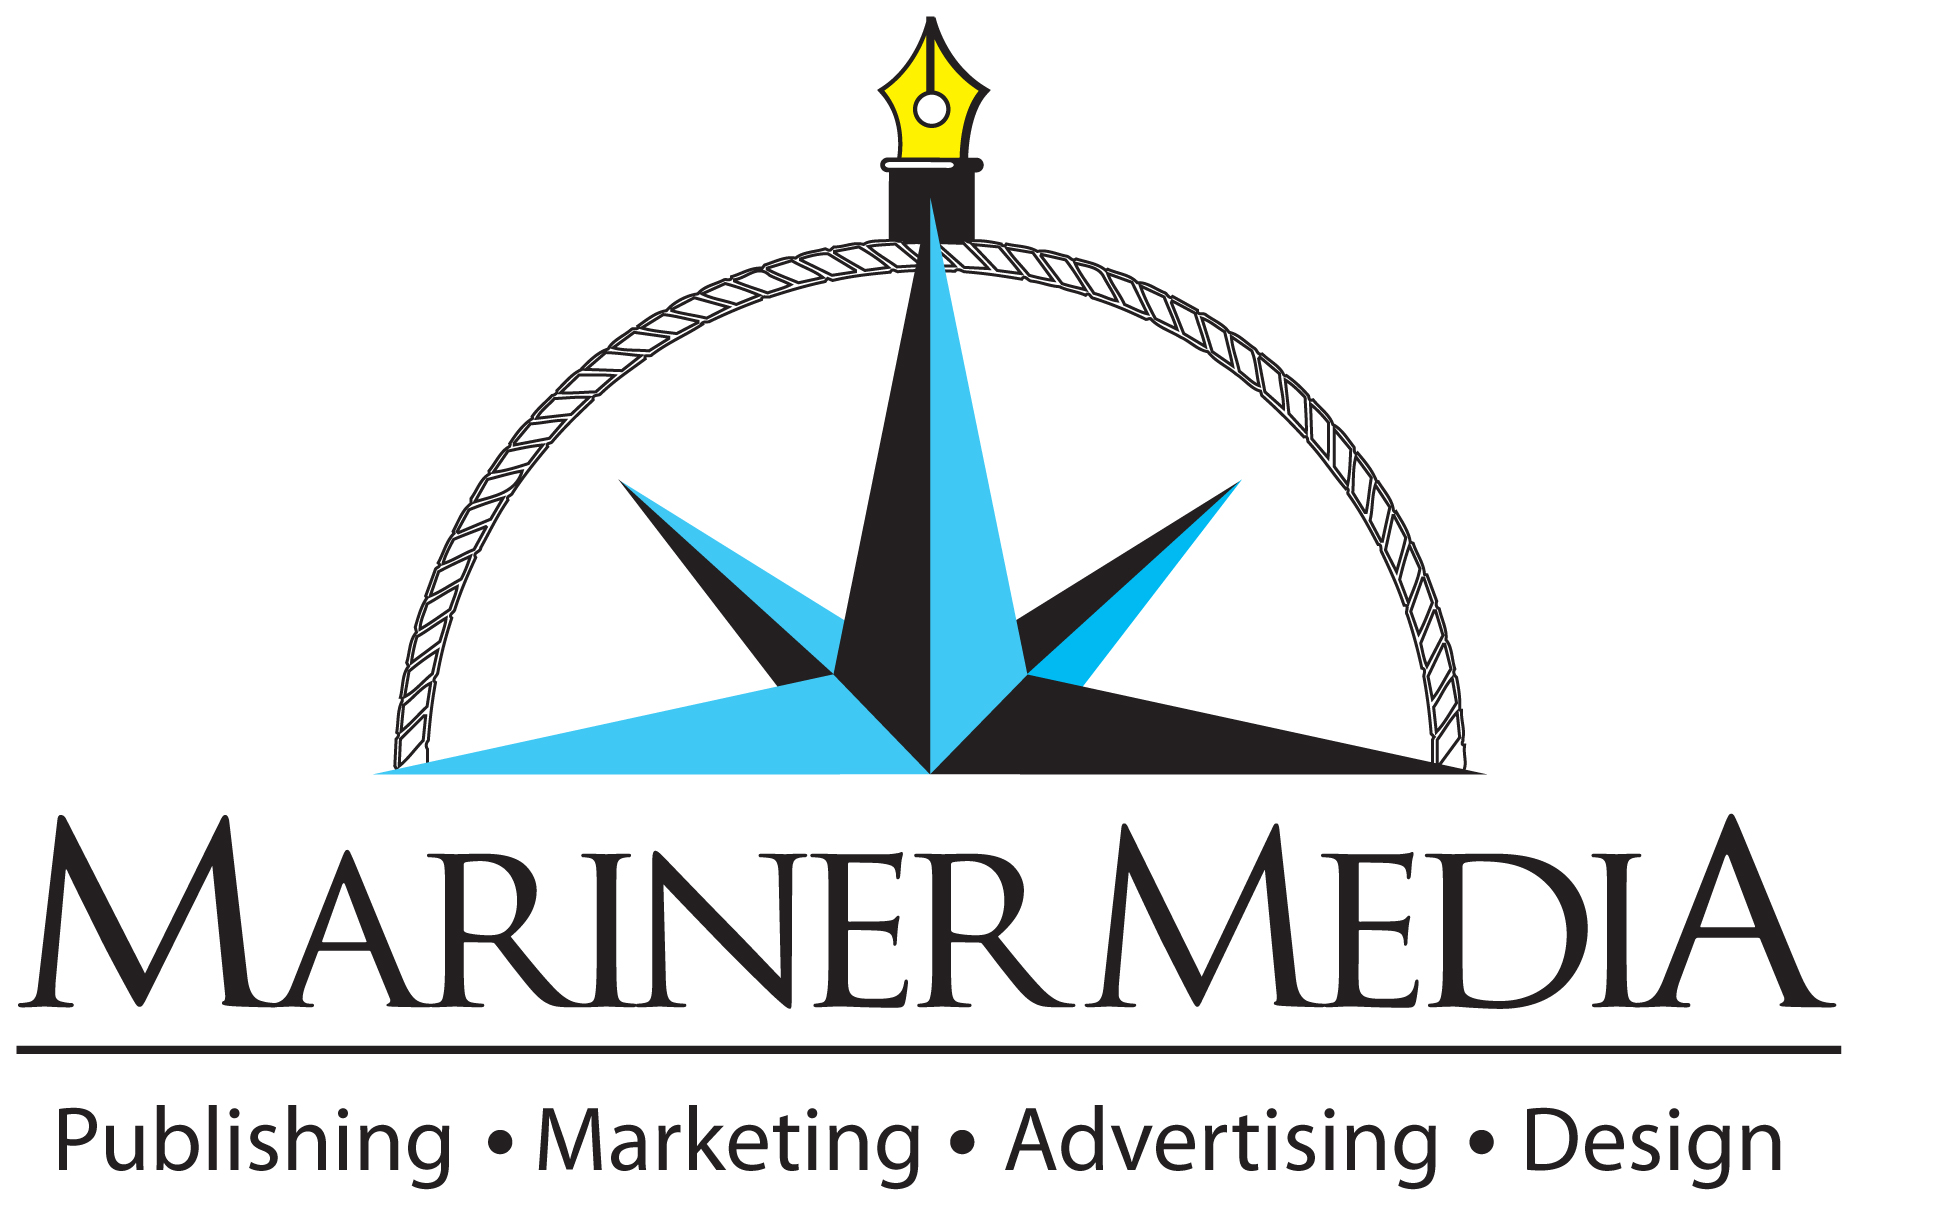 Mariner Media - Creative Advertising and Publishing Agency